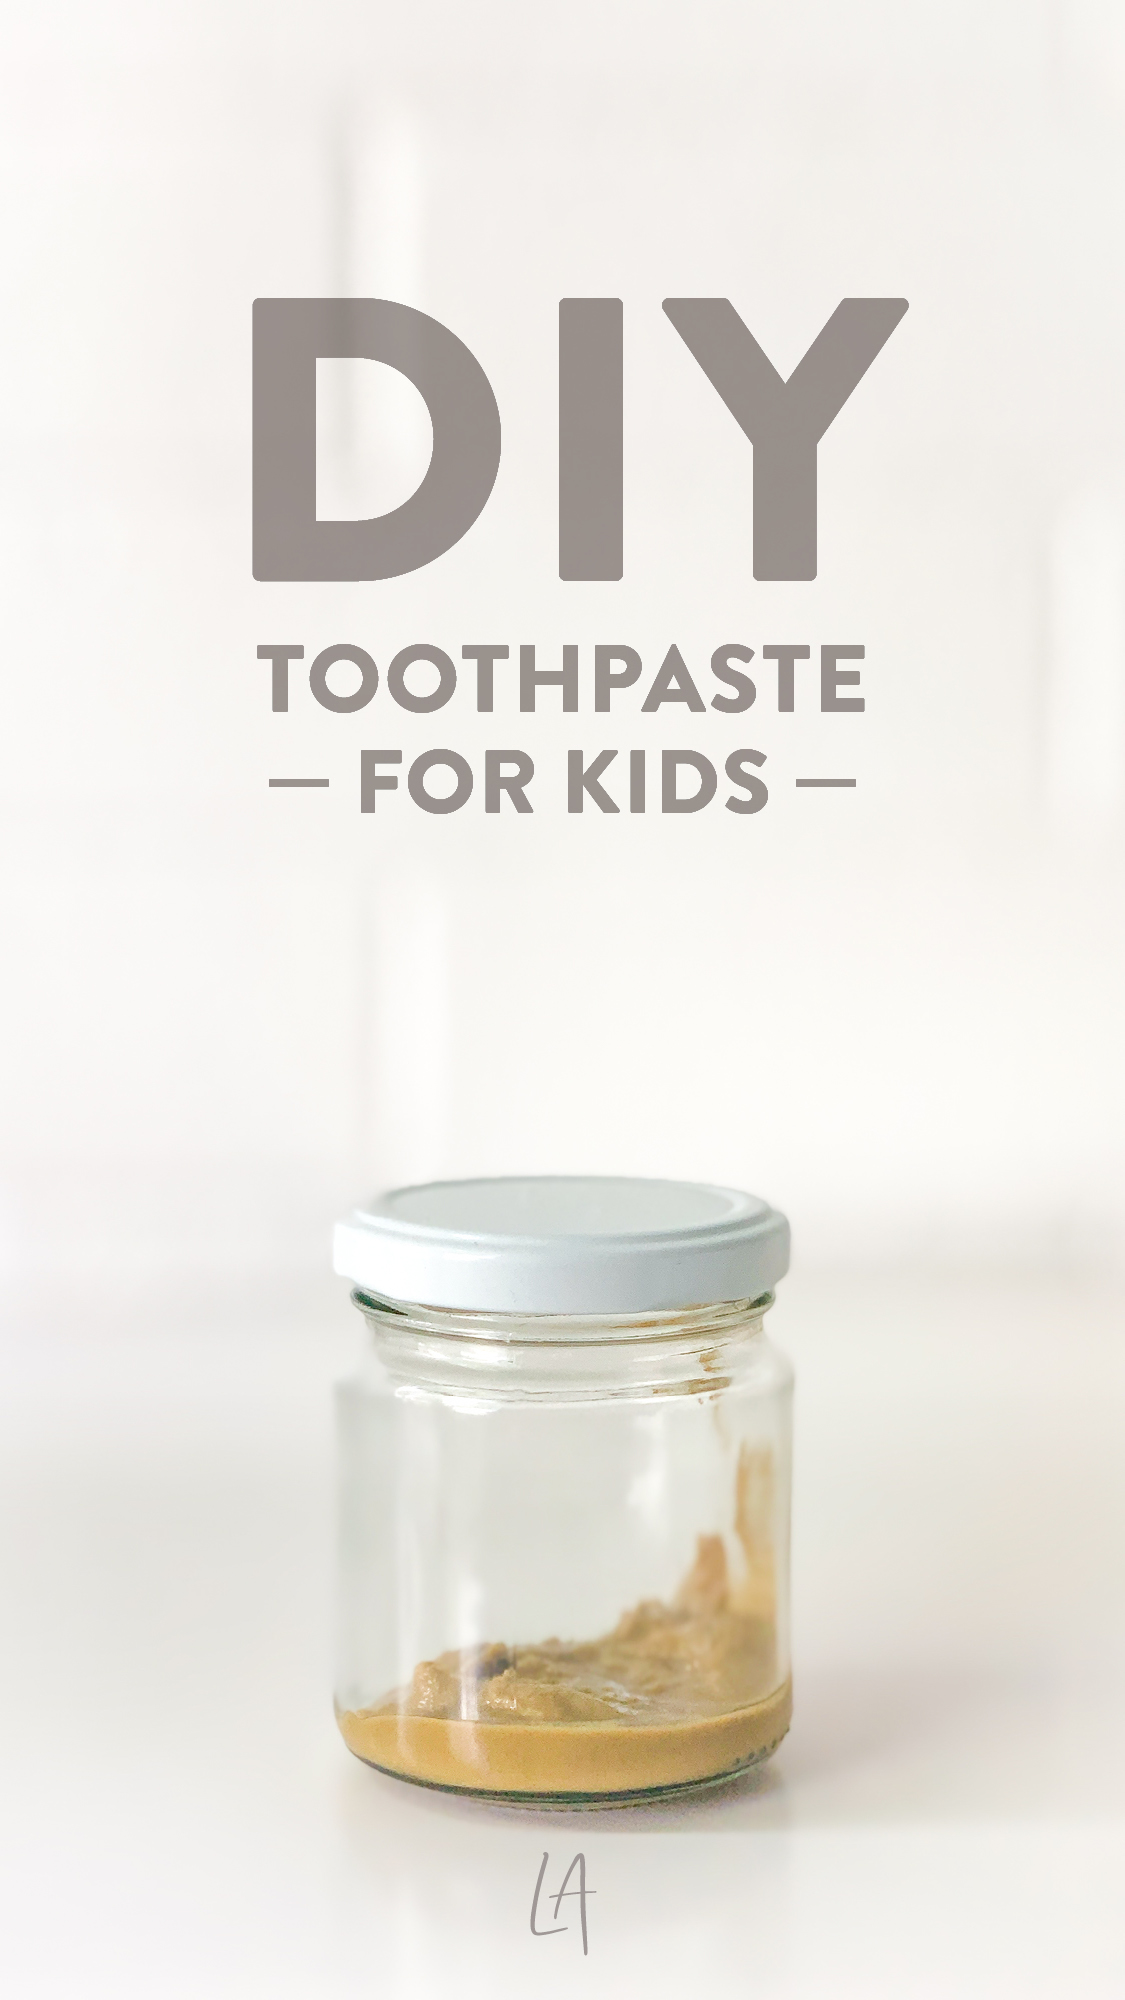 DIY Toothpaste for kids